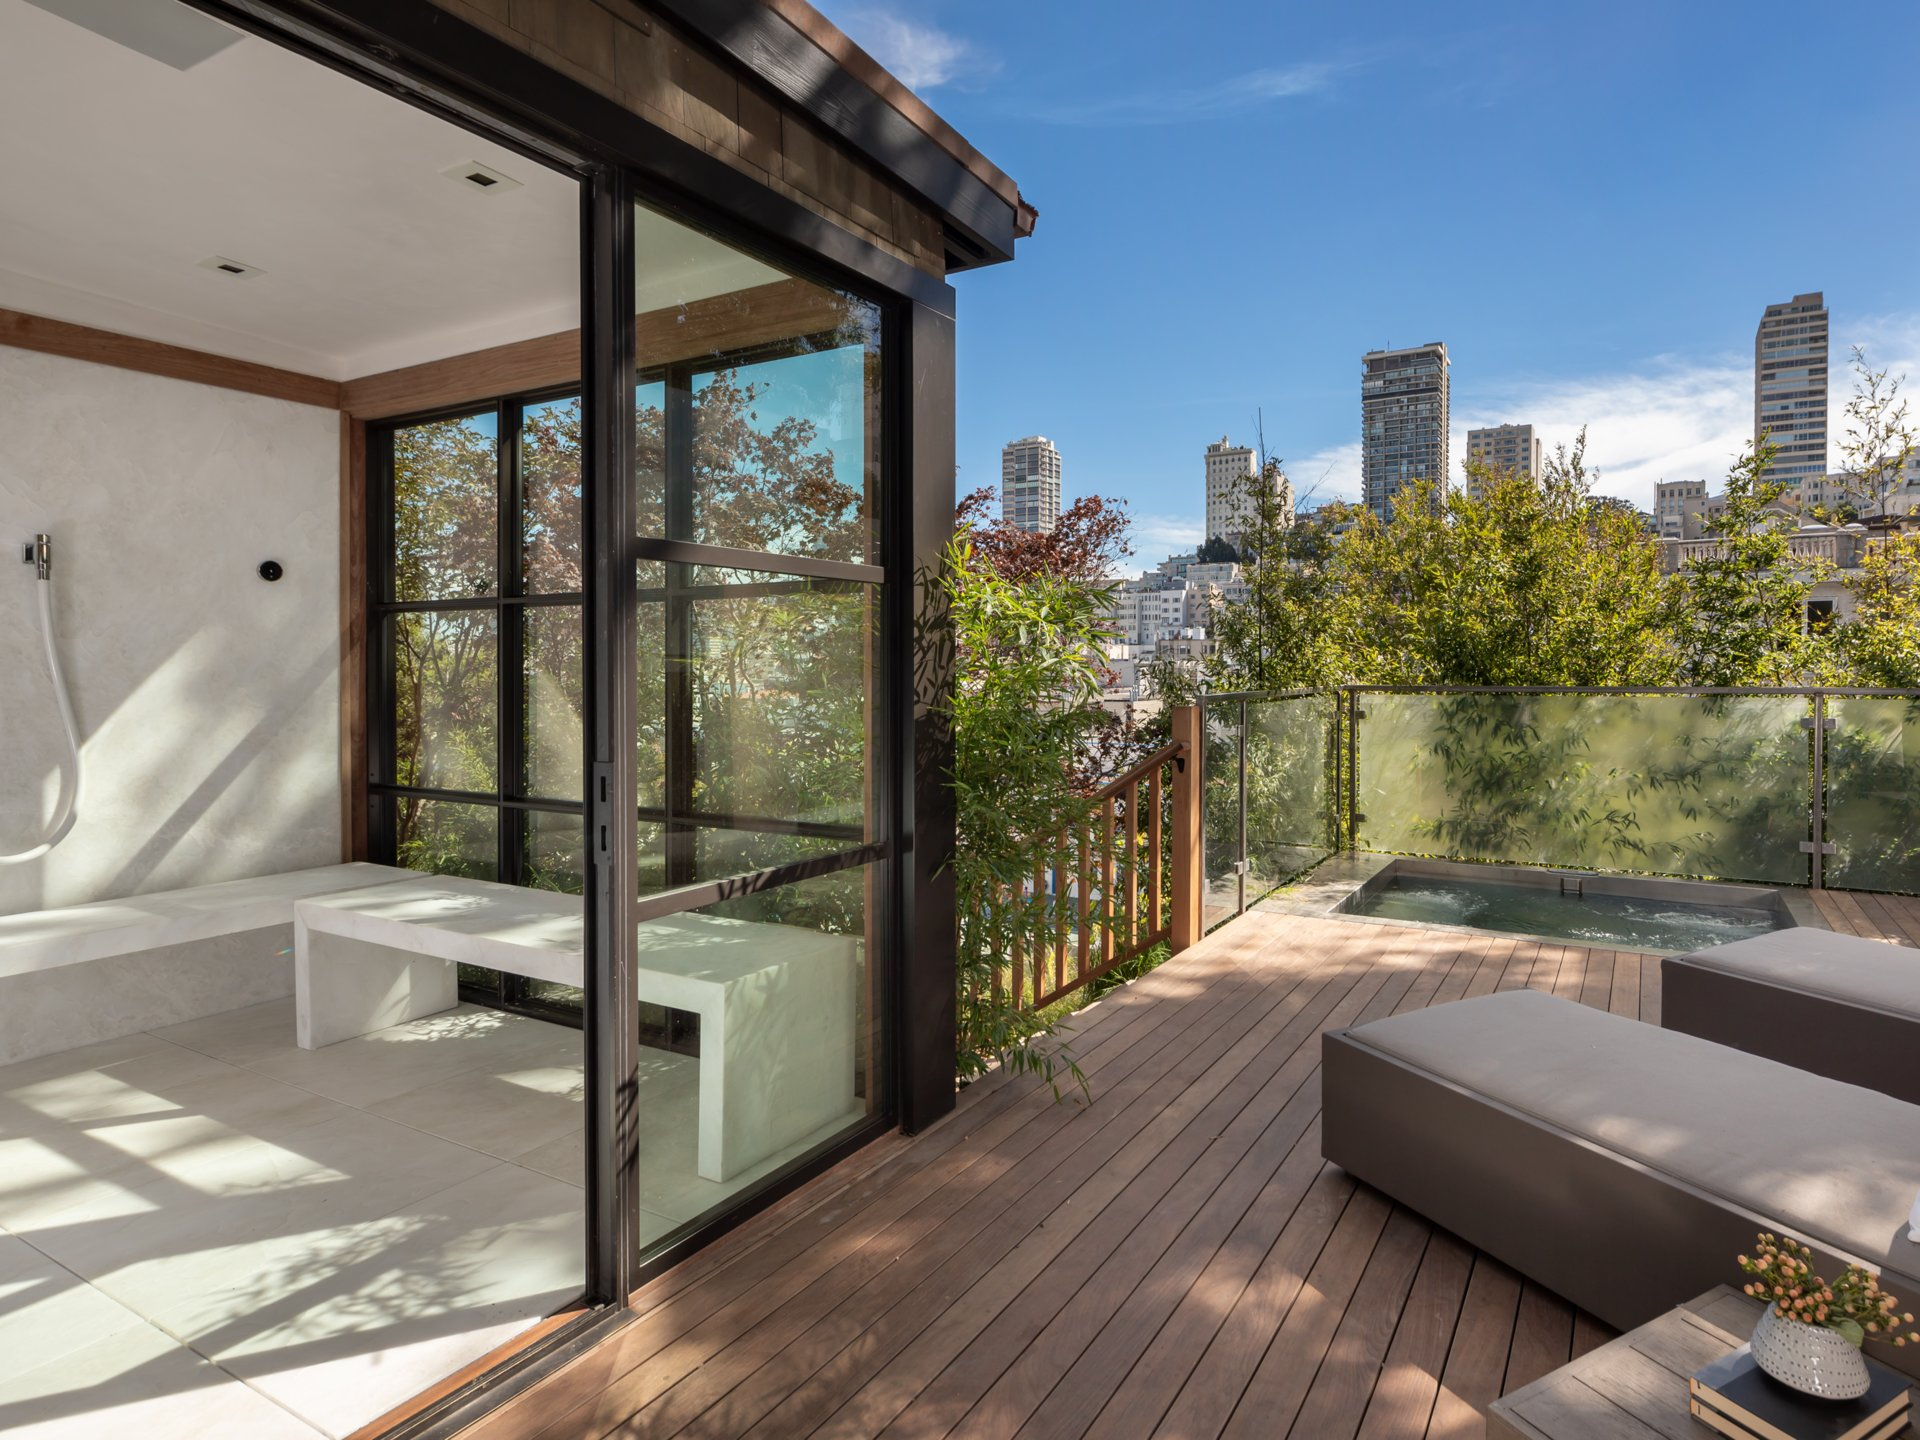 950 Lombard Street - Outdoor Spa